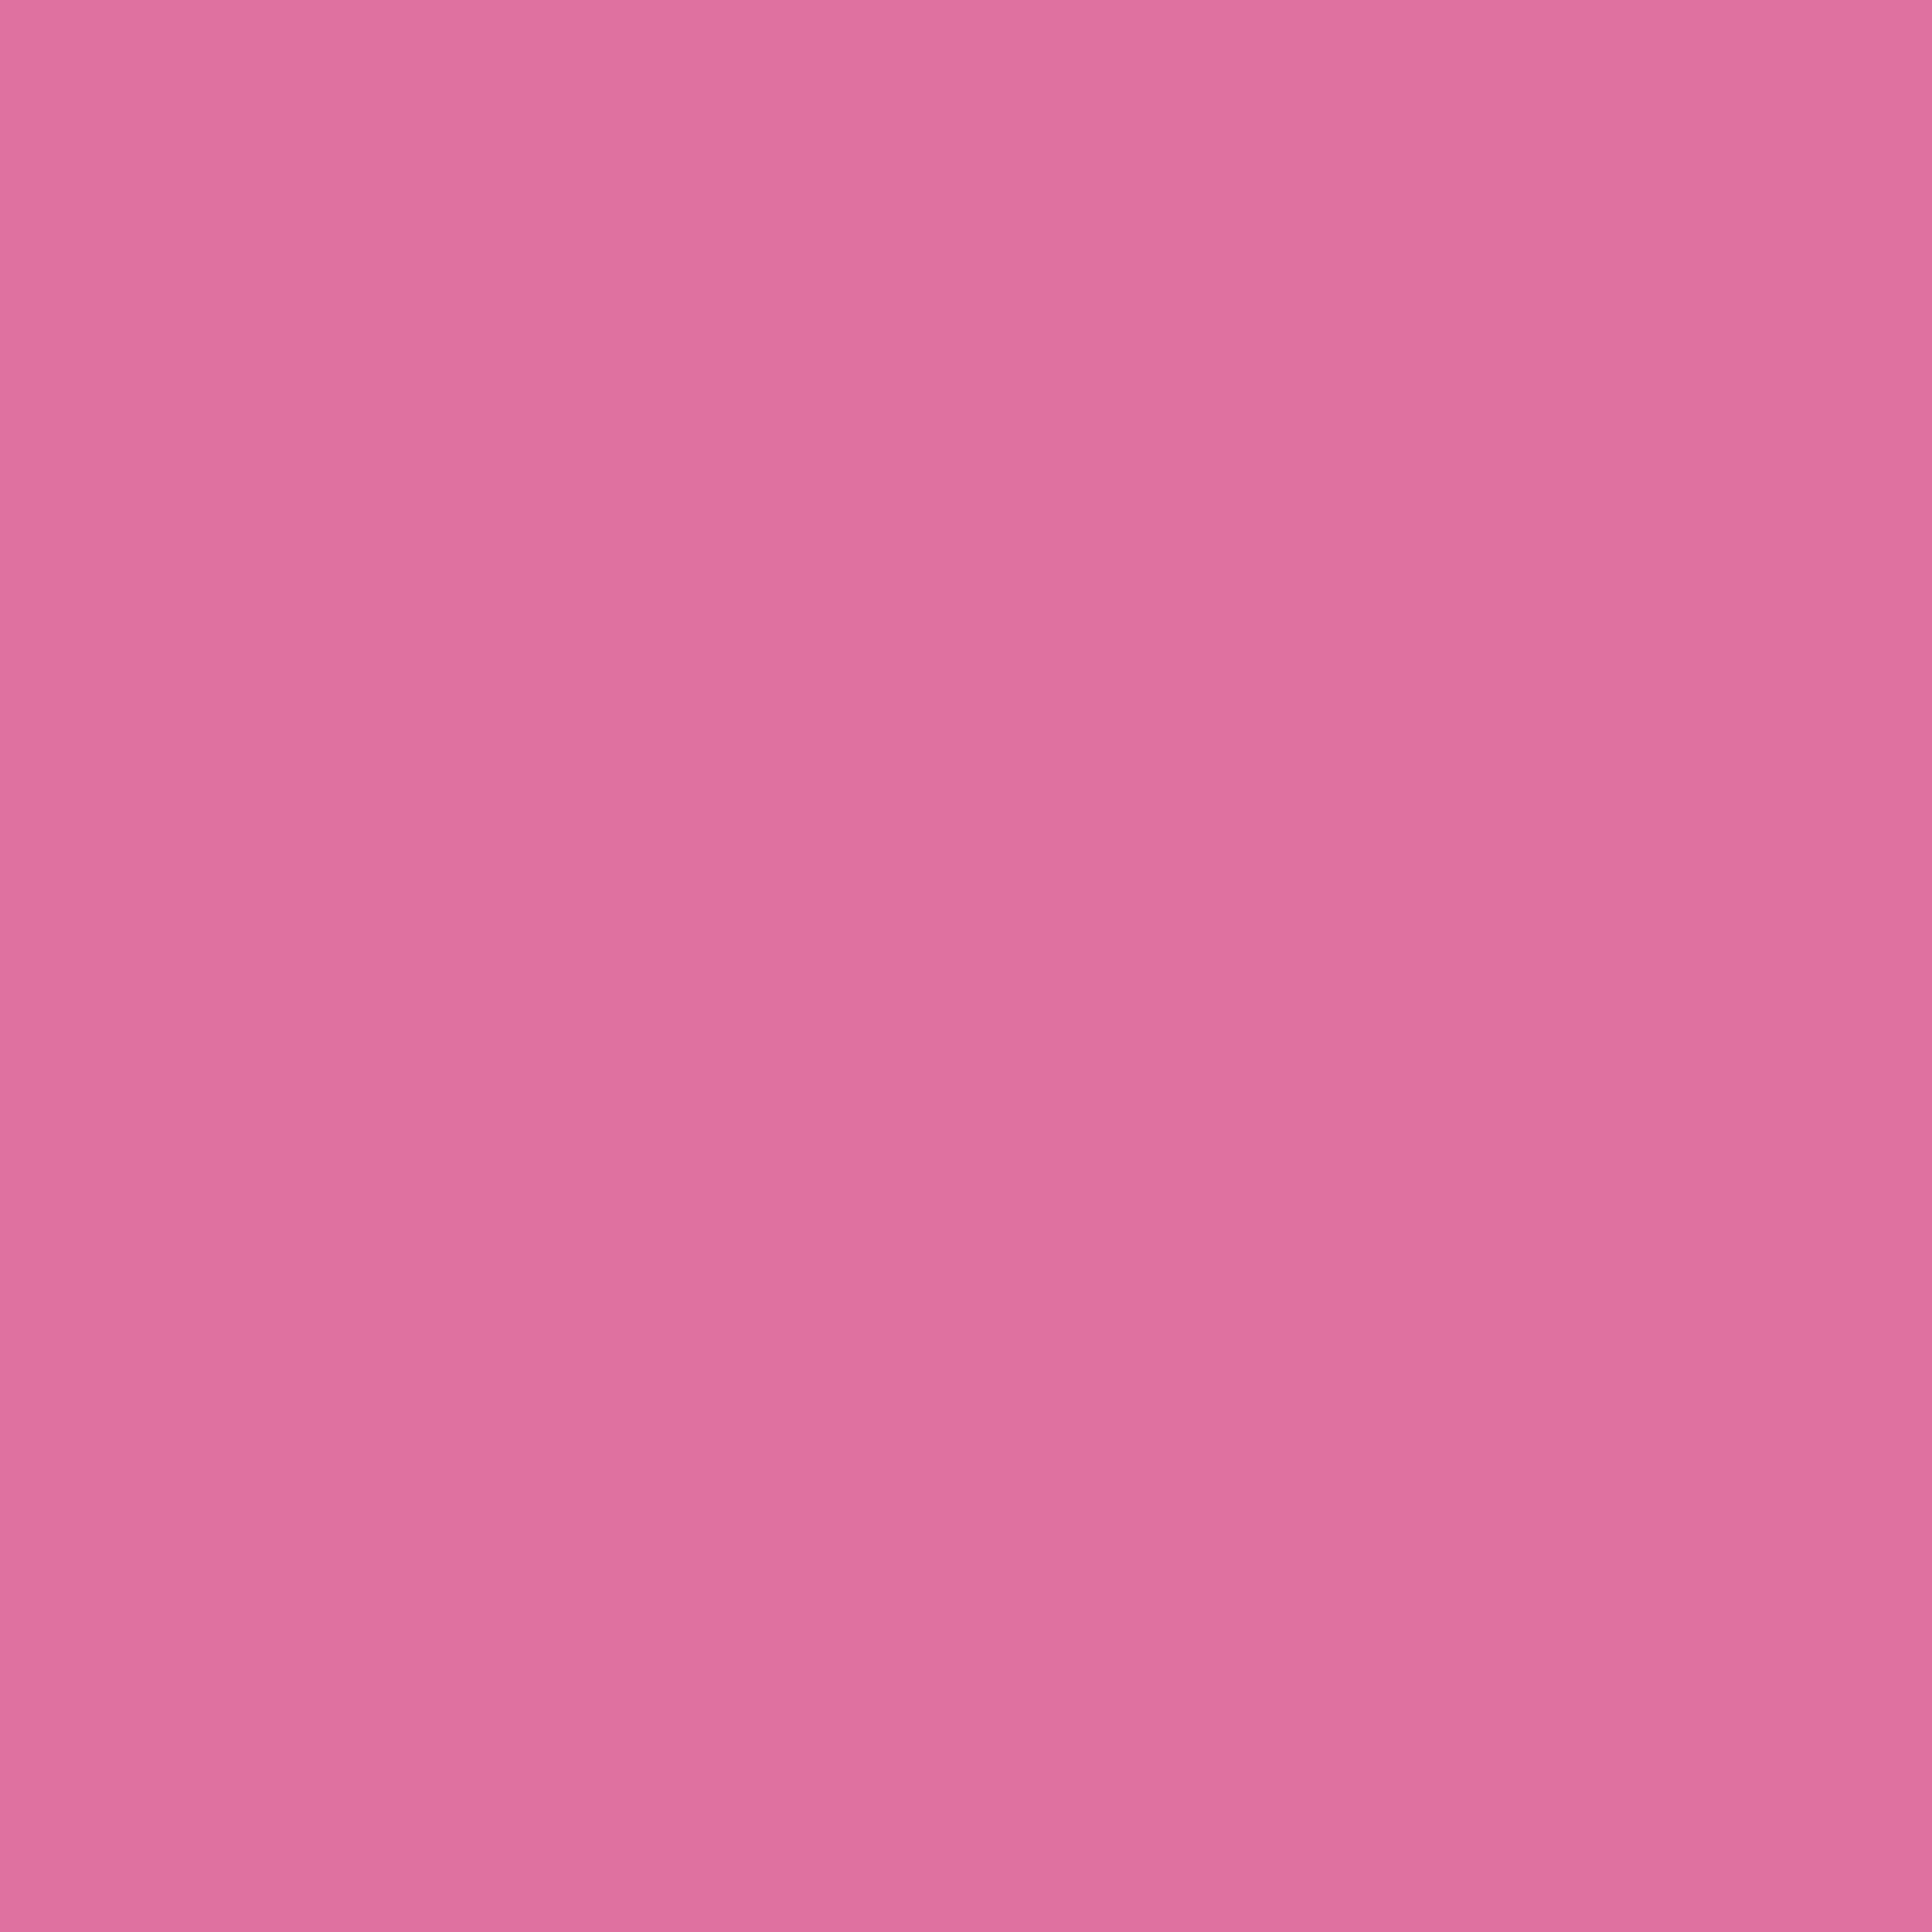 2048x2048 China Pink Solid Color Background